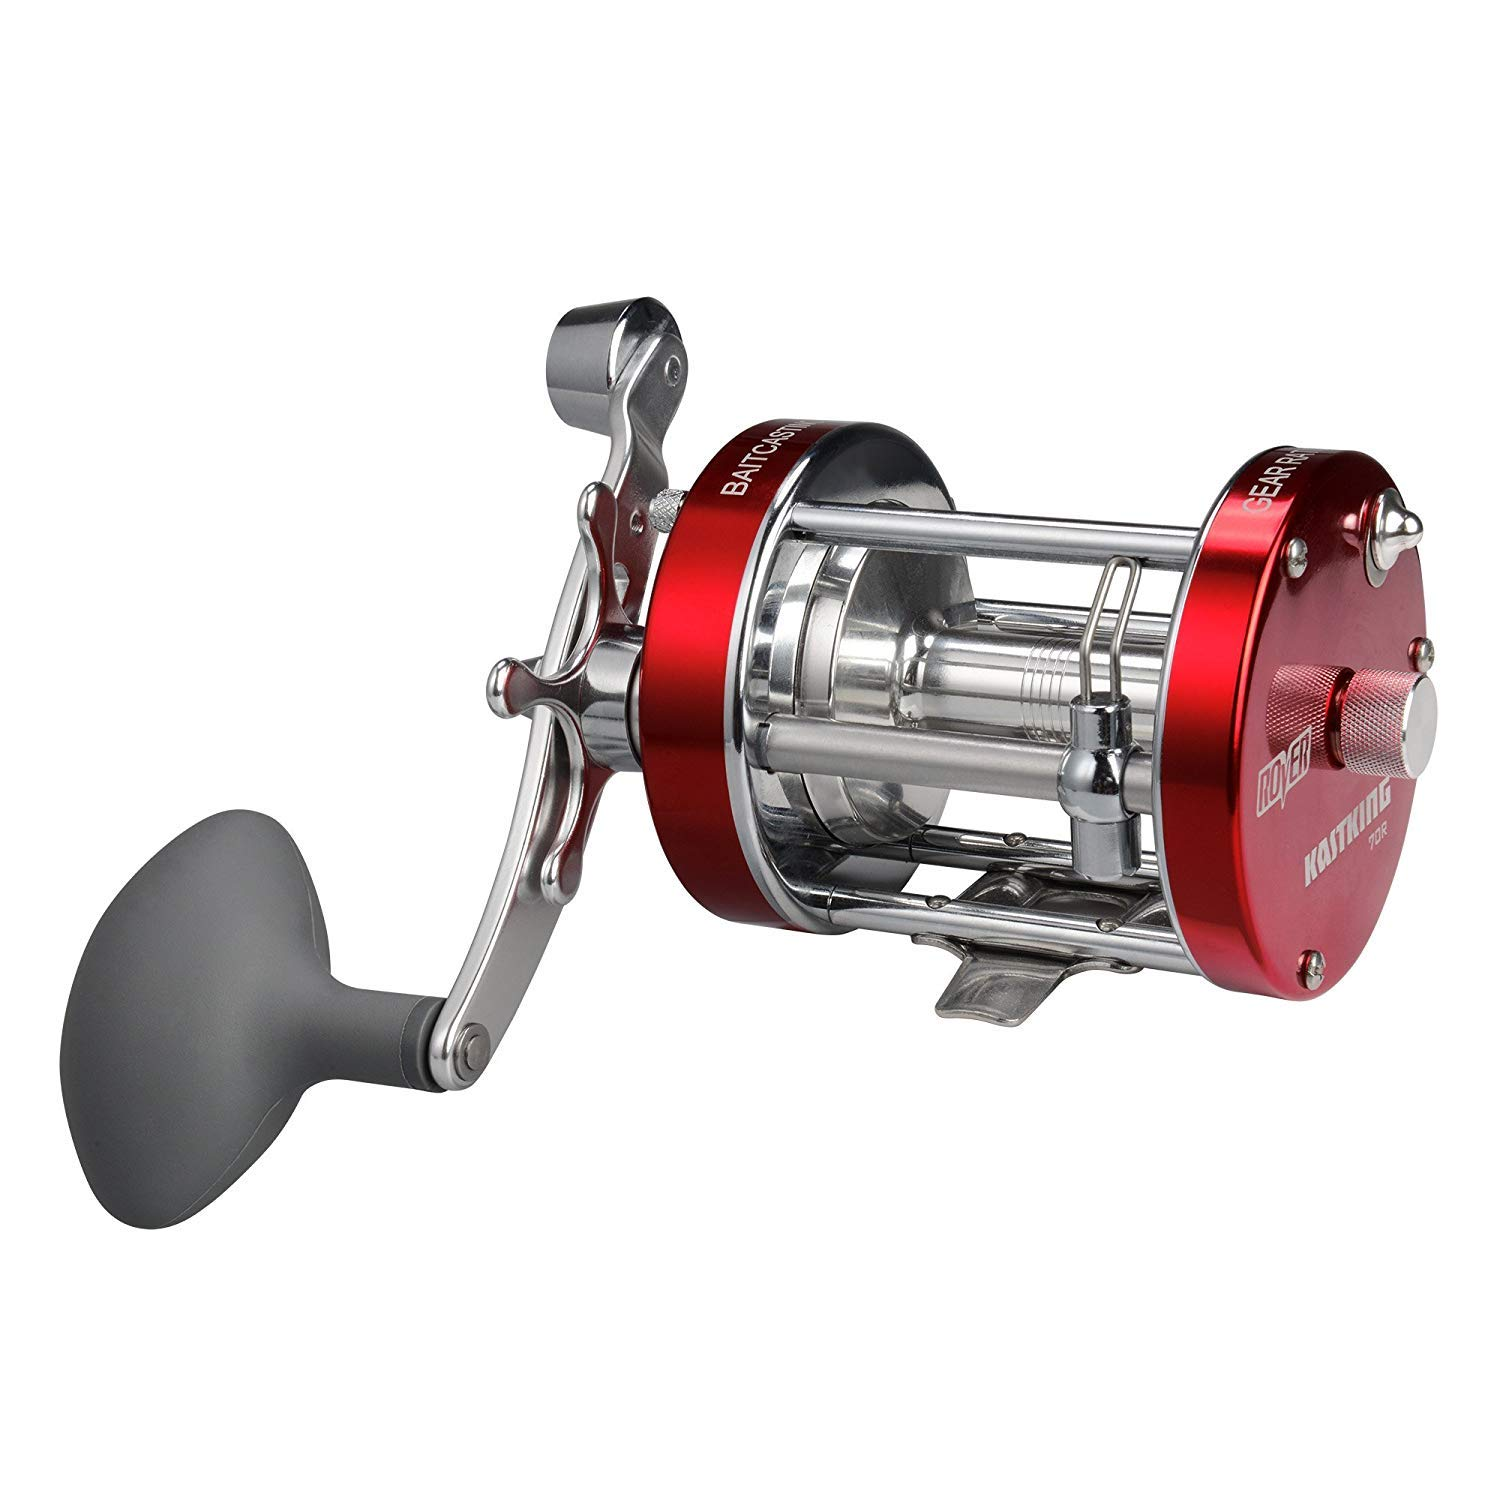 KastKing Rover Round Baitcasting Reel – No.1 Highest Rated Conventional Reel